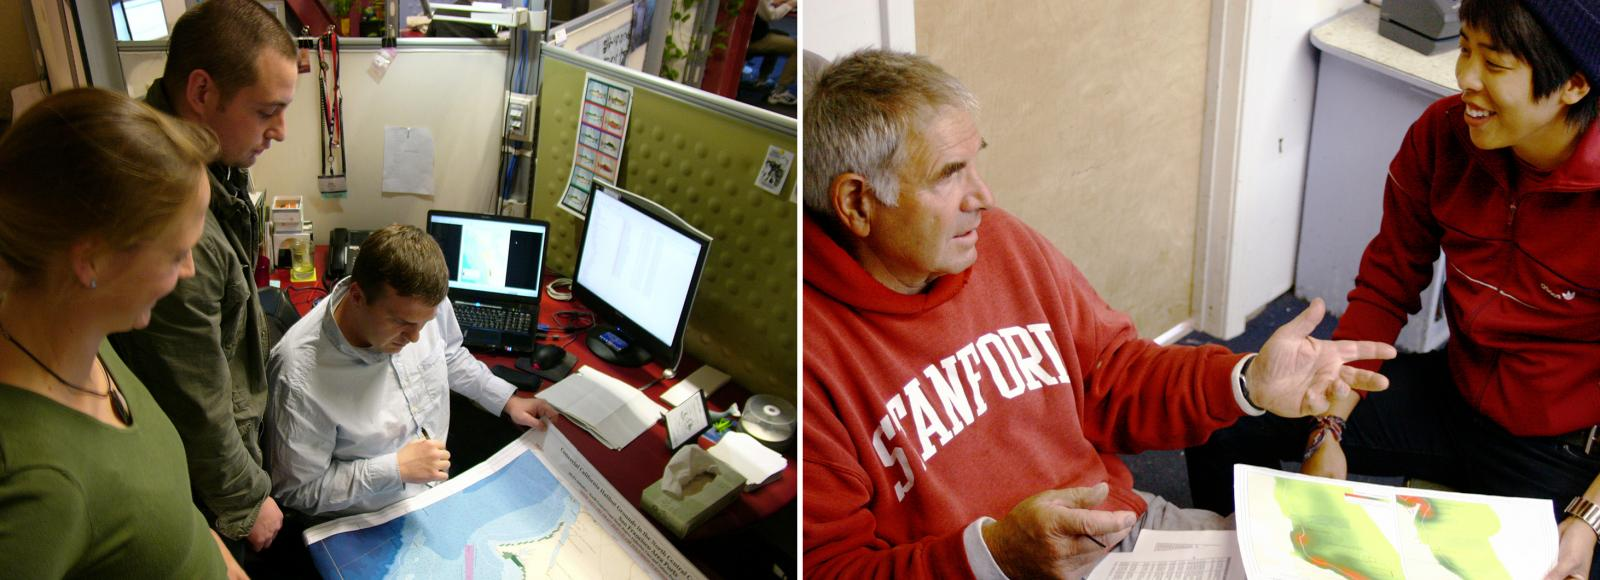 Two side-by-side photos. Left photo: woman and a man stand next to a man seated in a chair, who is holding a map at which they are all looking. Right photo: A man wearing a red Stanford sweatshirt speaks to a woman, who is holding a map. Both are sitting on the ground.